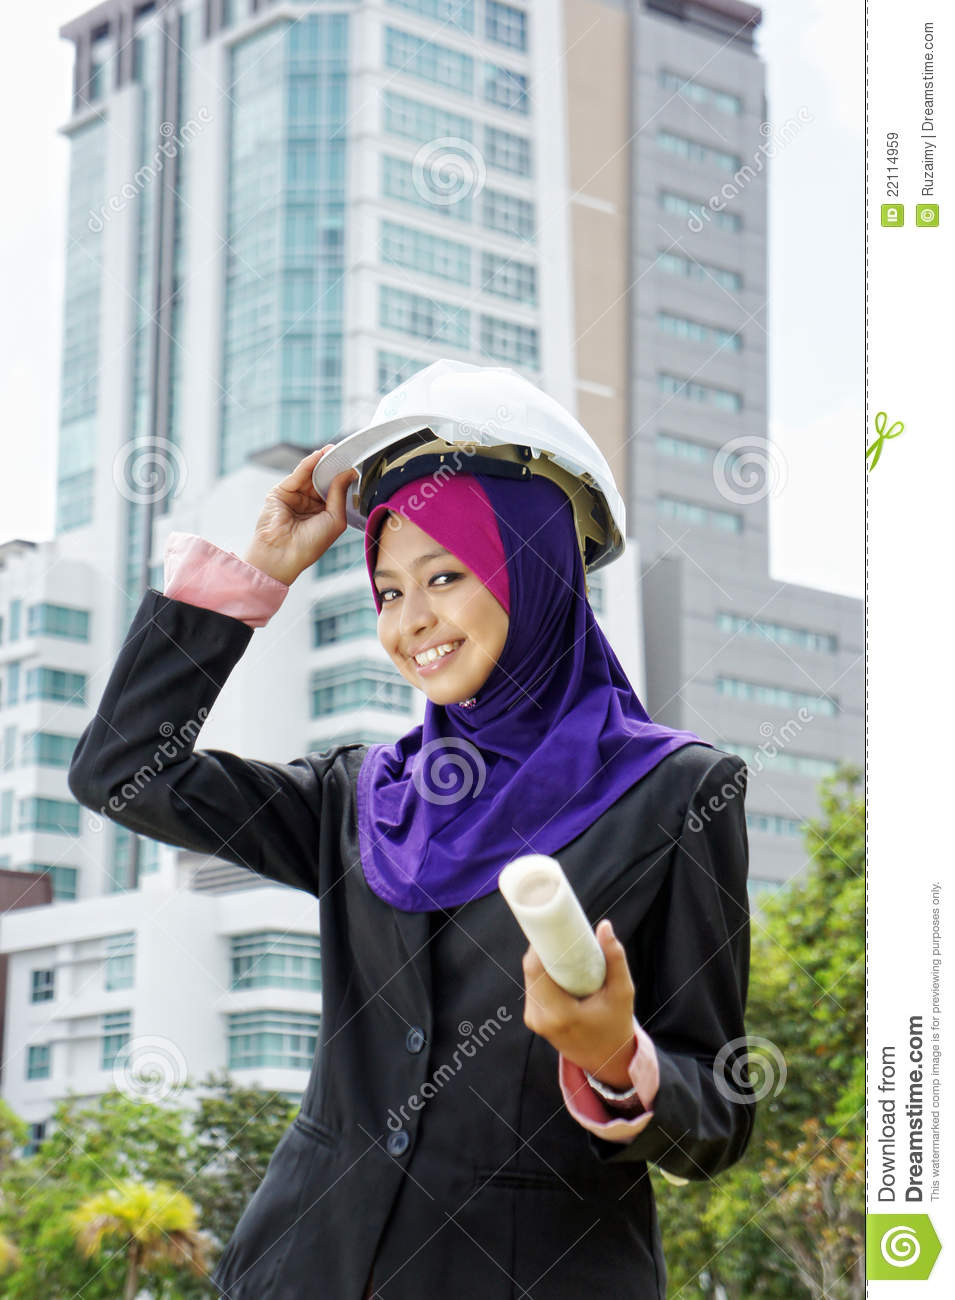 sebago muslim women dating site Welcome to the simplest online dating site to date, flirt, or just chat with muslim singles it's free to register, view photos, and send messages to single muslim men and women in your area one of the largest online dating apps for muslim singles on facebook with over 25 million connected singles, firstmet makes it fun and easy for mature adults to.